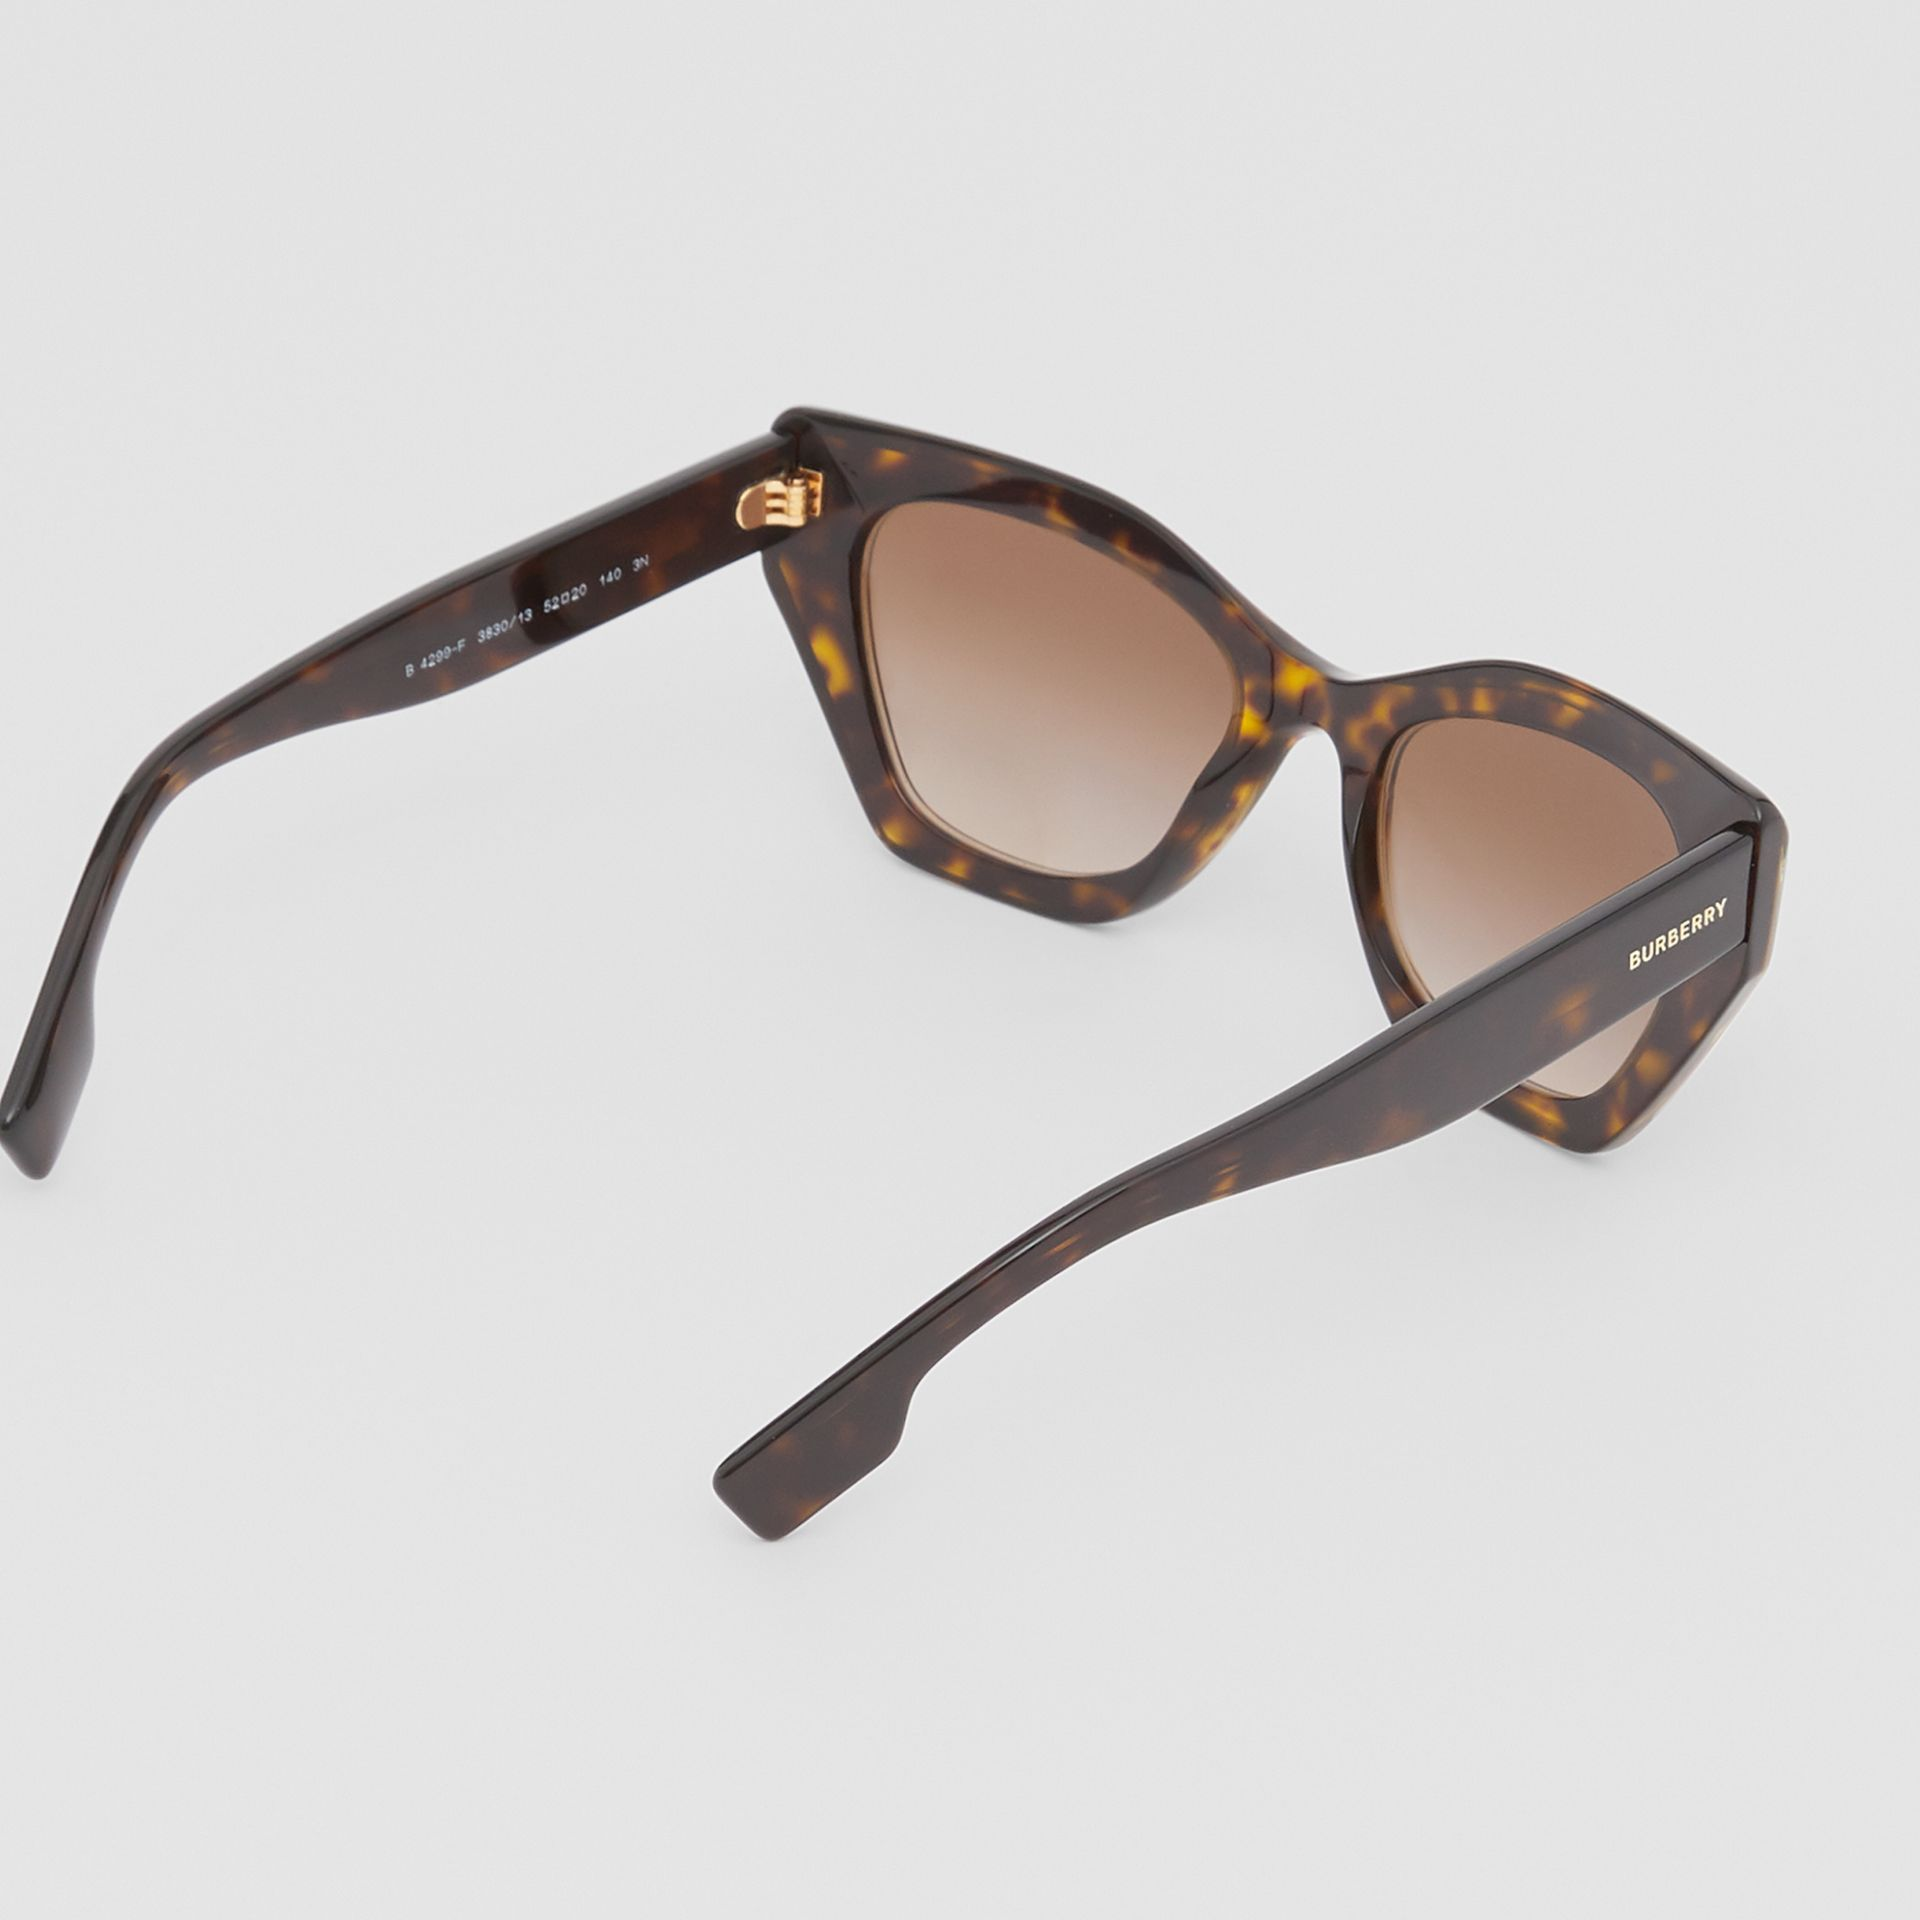 Butterfly Frame Sunglasses in Tortoiseshell - Women | Burberry - gallery image 4